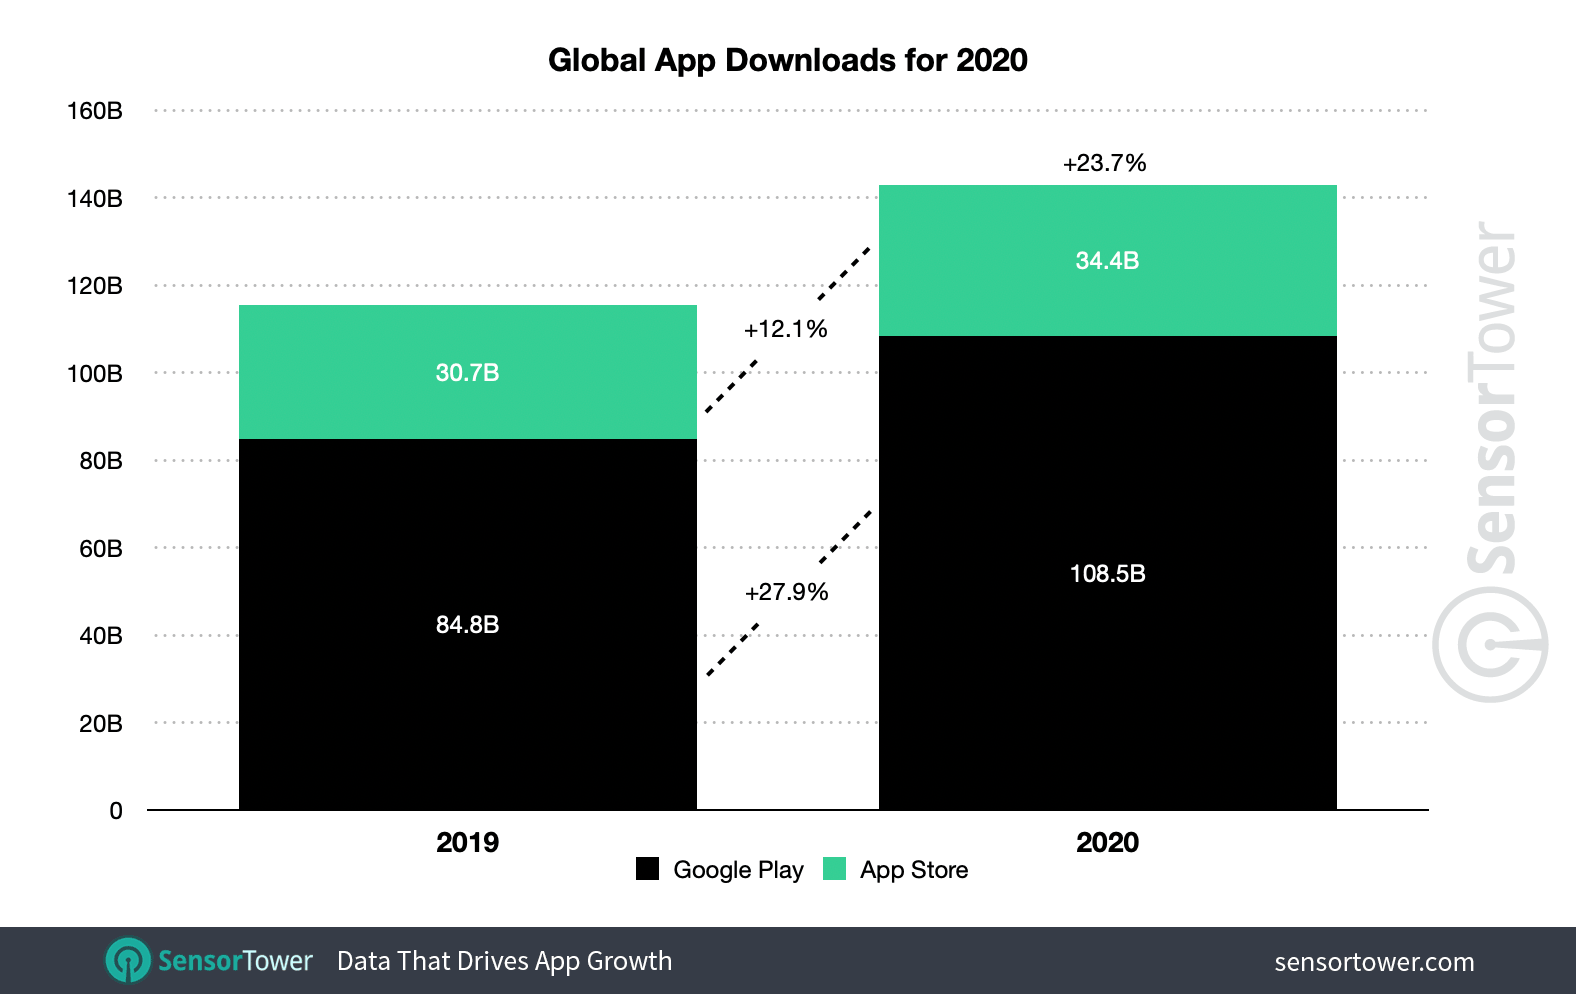 android-vs-ios-game-development-which-platform-runs-the-show-in-2021-3